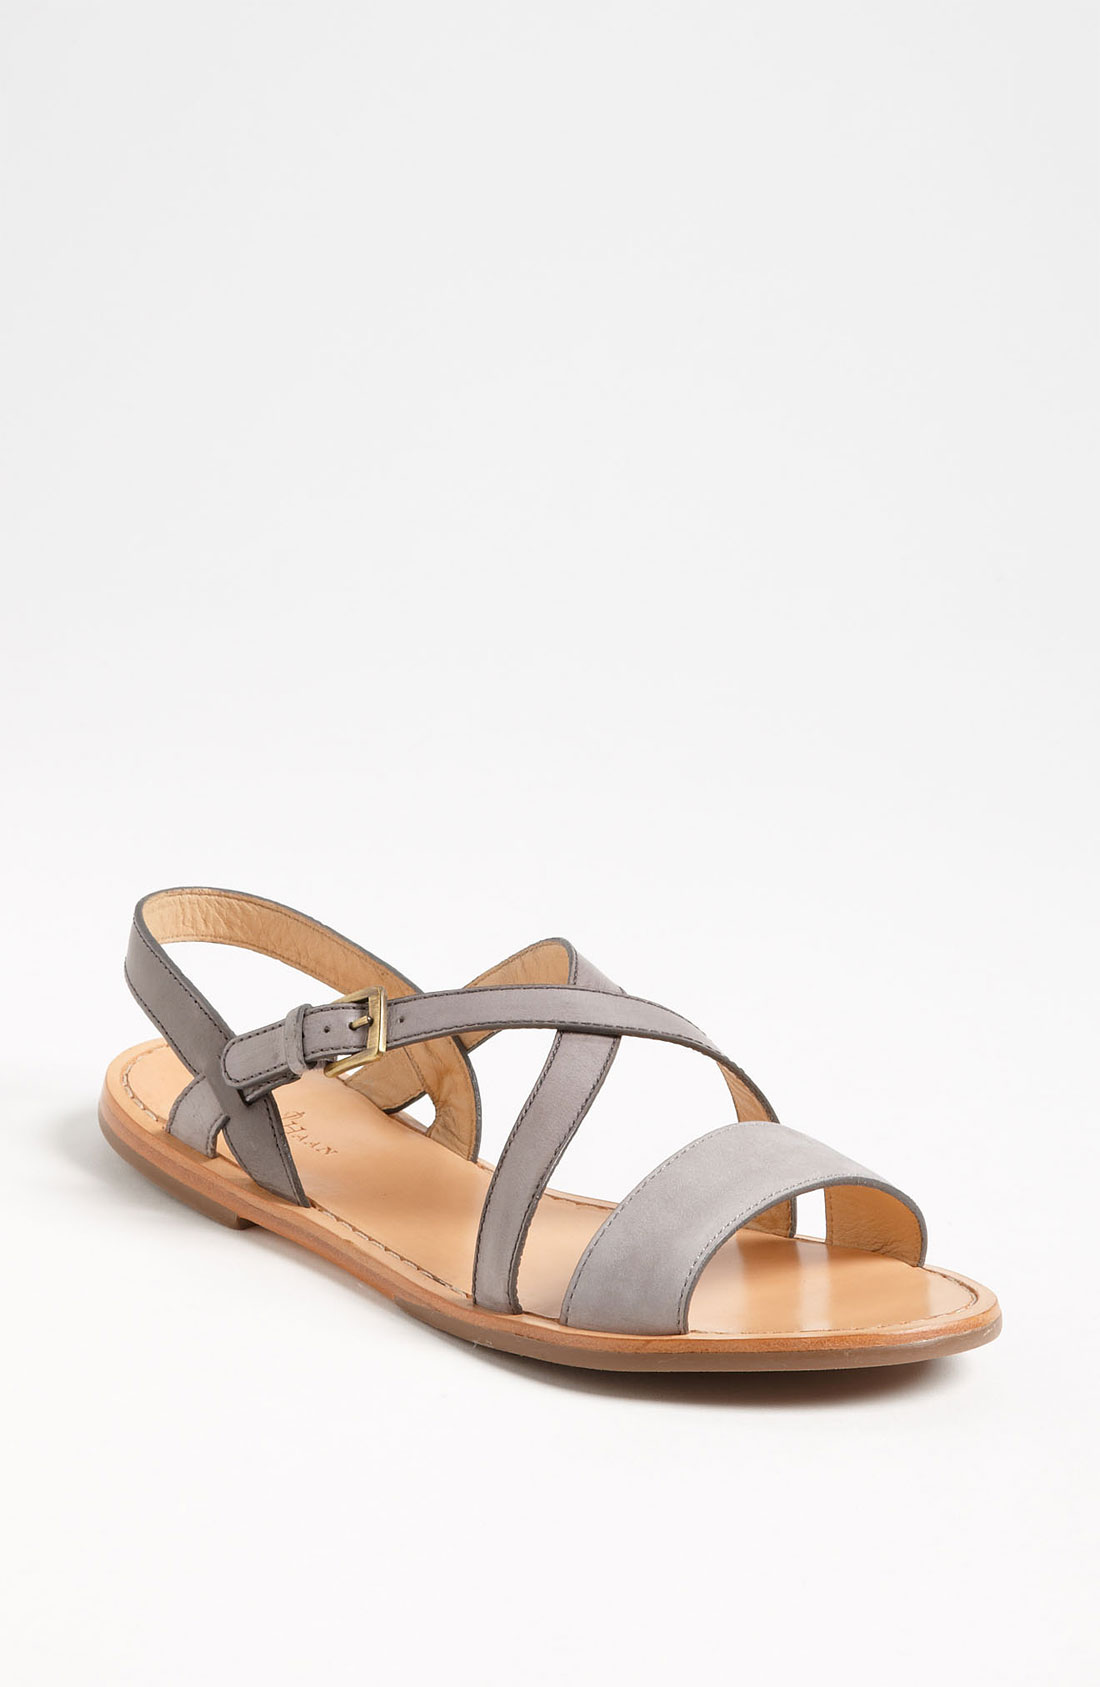 Model Cole Haan Womens Taylor Wedge Sandals In Beige Sand Stone Ivory